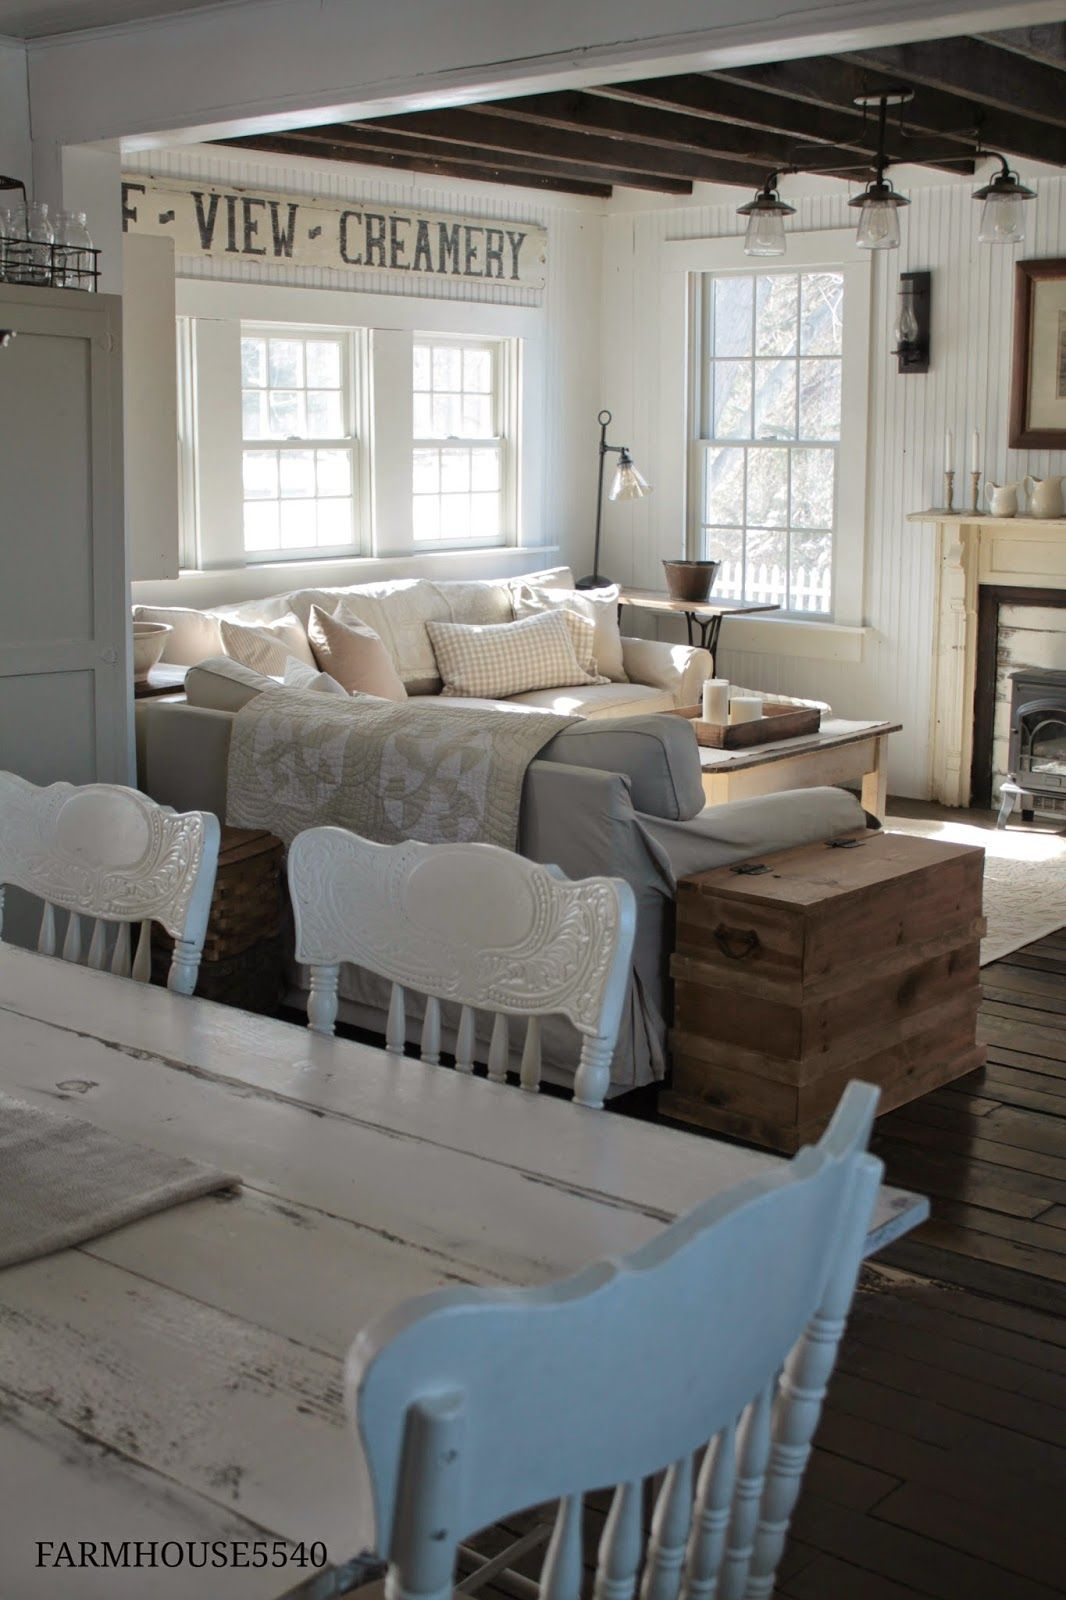 Farmhouse 5540 Love The Painted Chairs